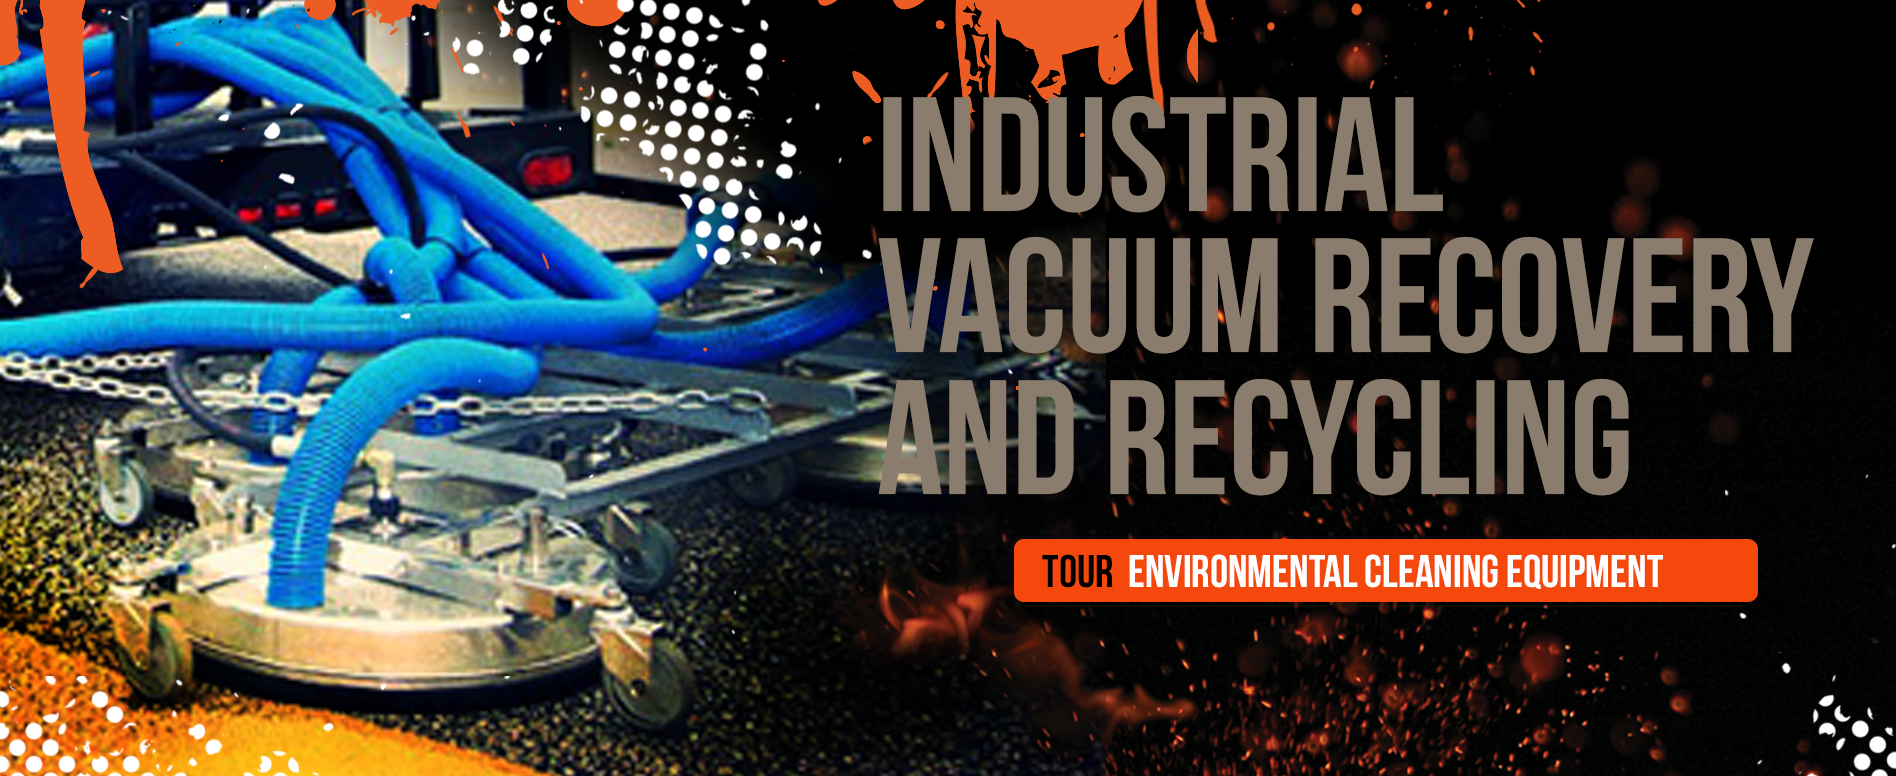 Pressure Washer Vacuum Recovery And Recycling Equipment